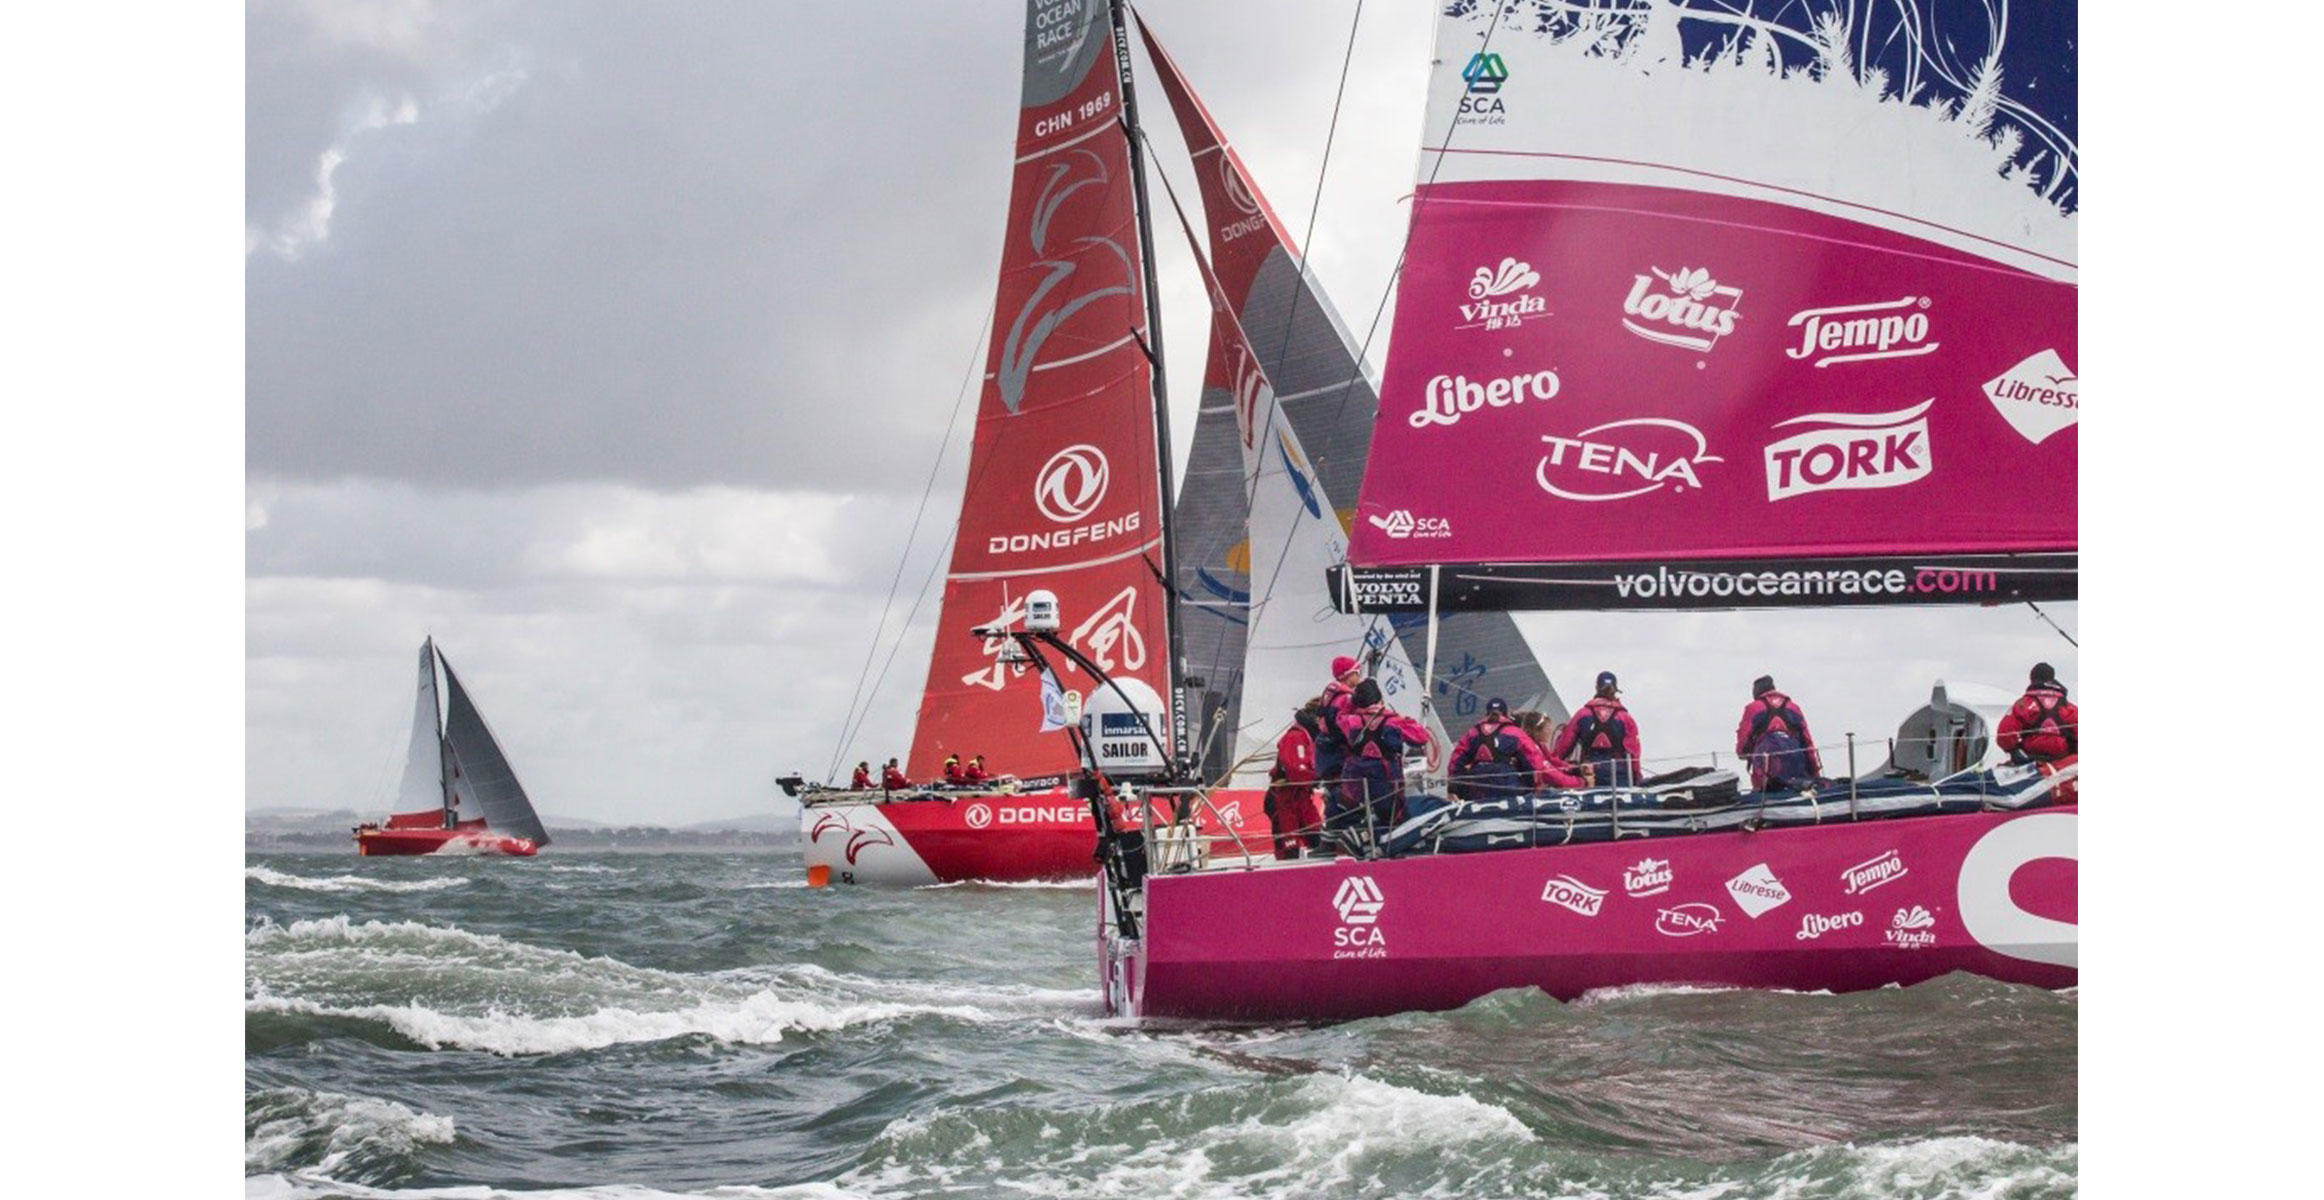 Volvo Ocean Race 2014/15: A race around the world